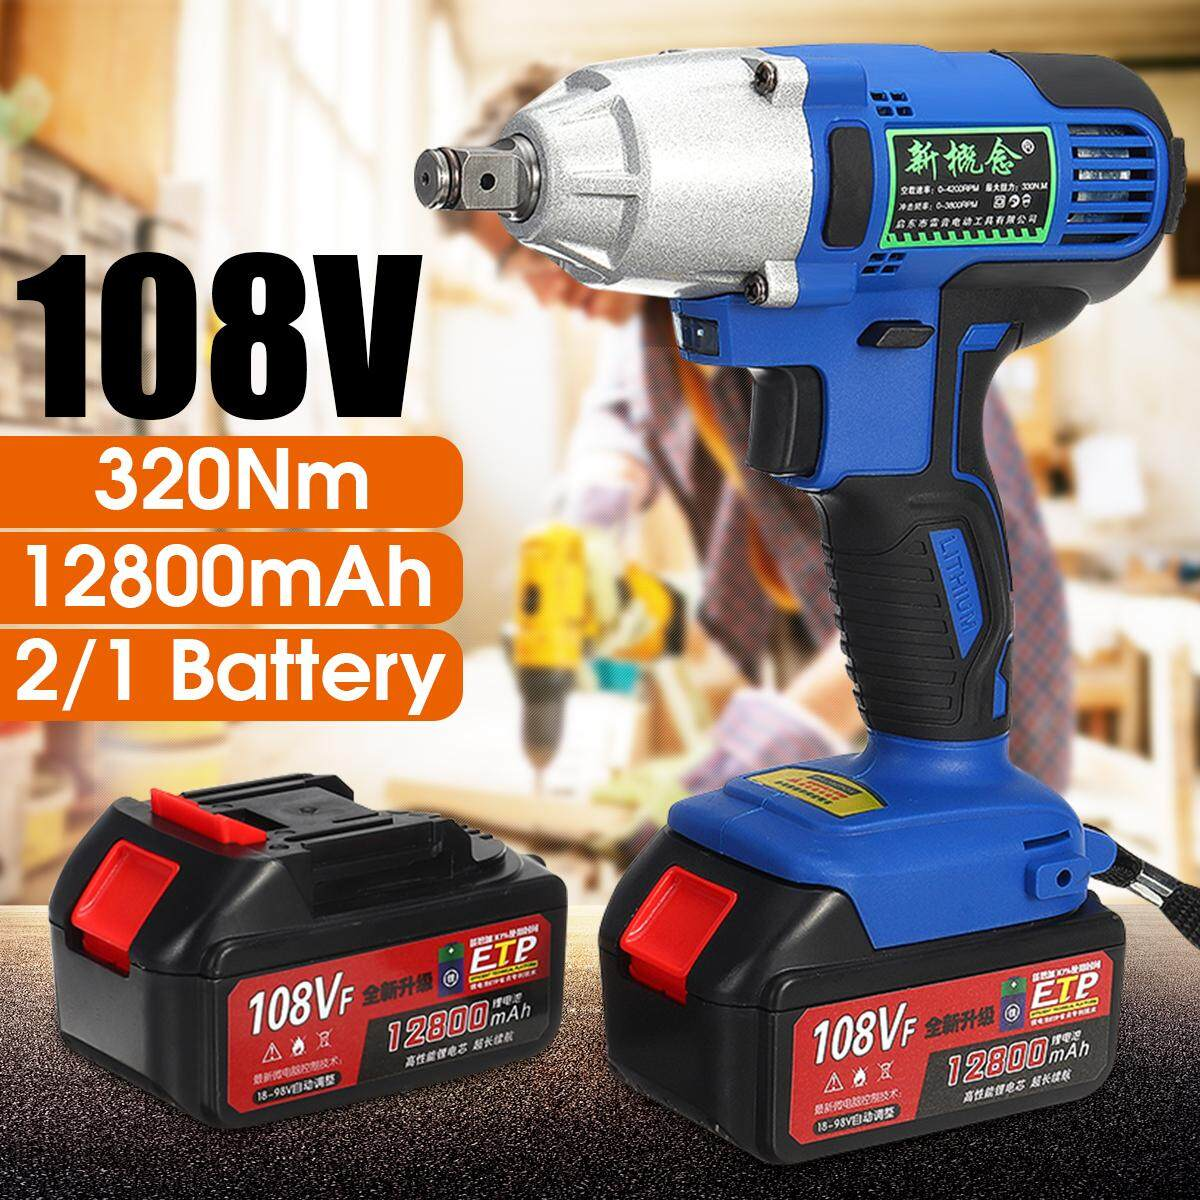 【Free Shipping + Flash Deal】320Nm Electric Drill Impact Drive Wrench Battery Sockets LED Light Home DIY